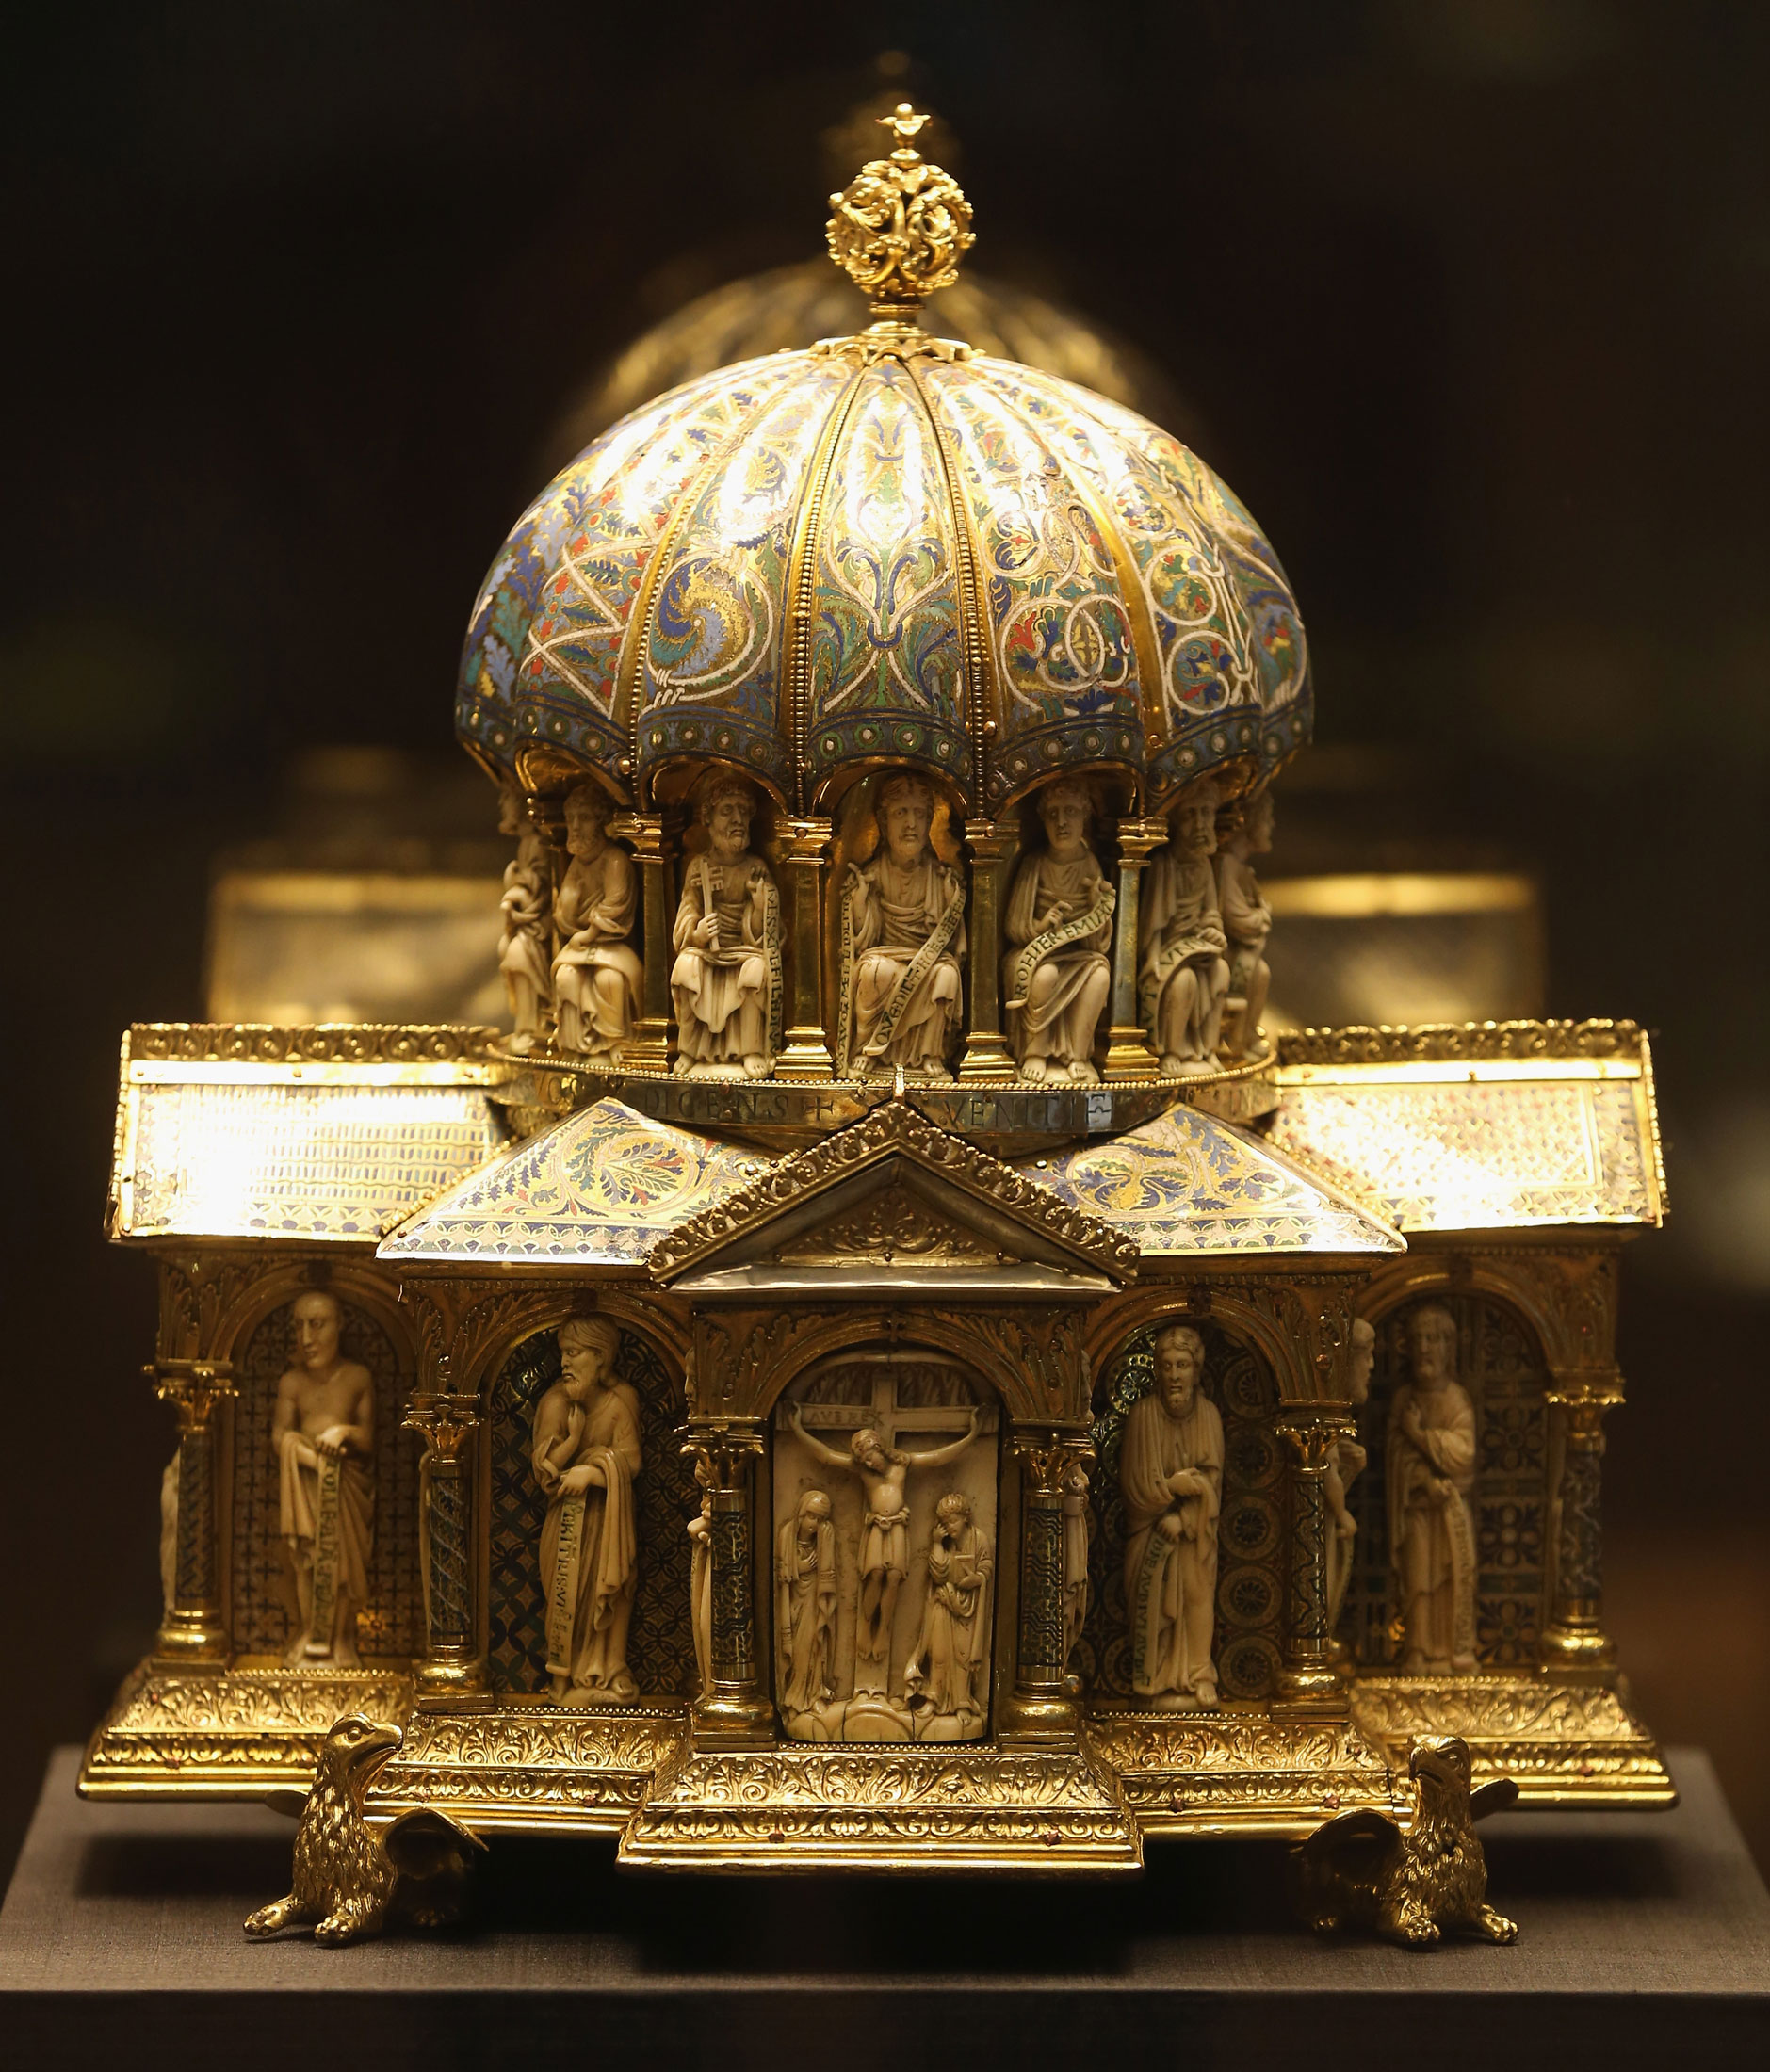 The 12th century dome reliquary of the Guelph Treasure stands on display at the Museum of Decorative Arts in Berlin on Feb. 26, 2015.